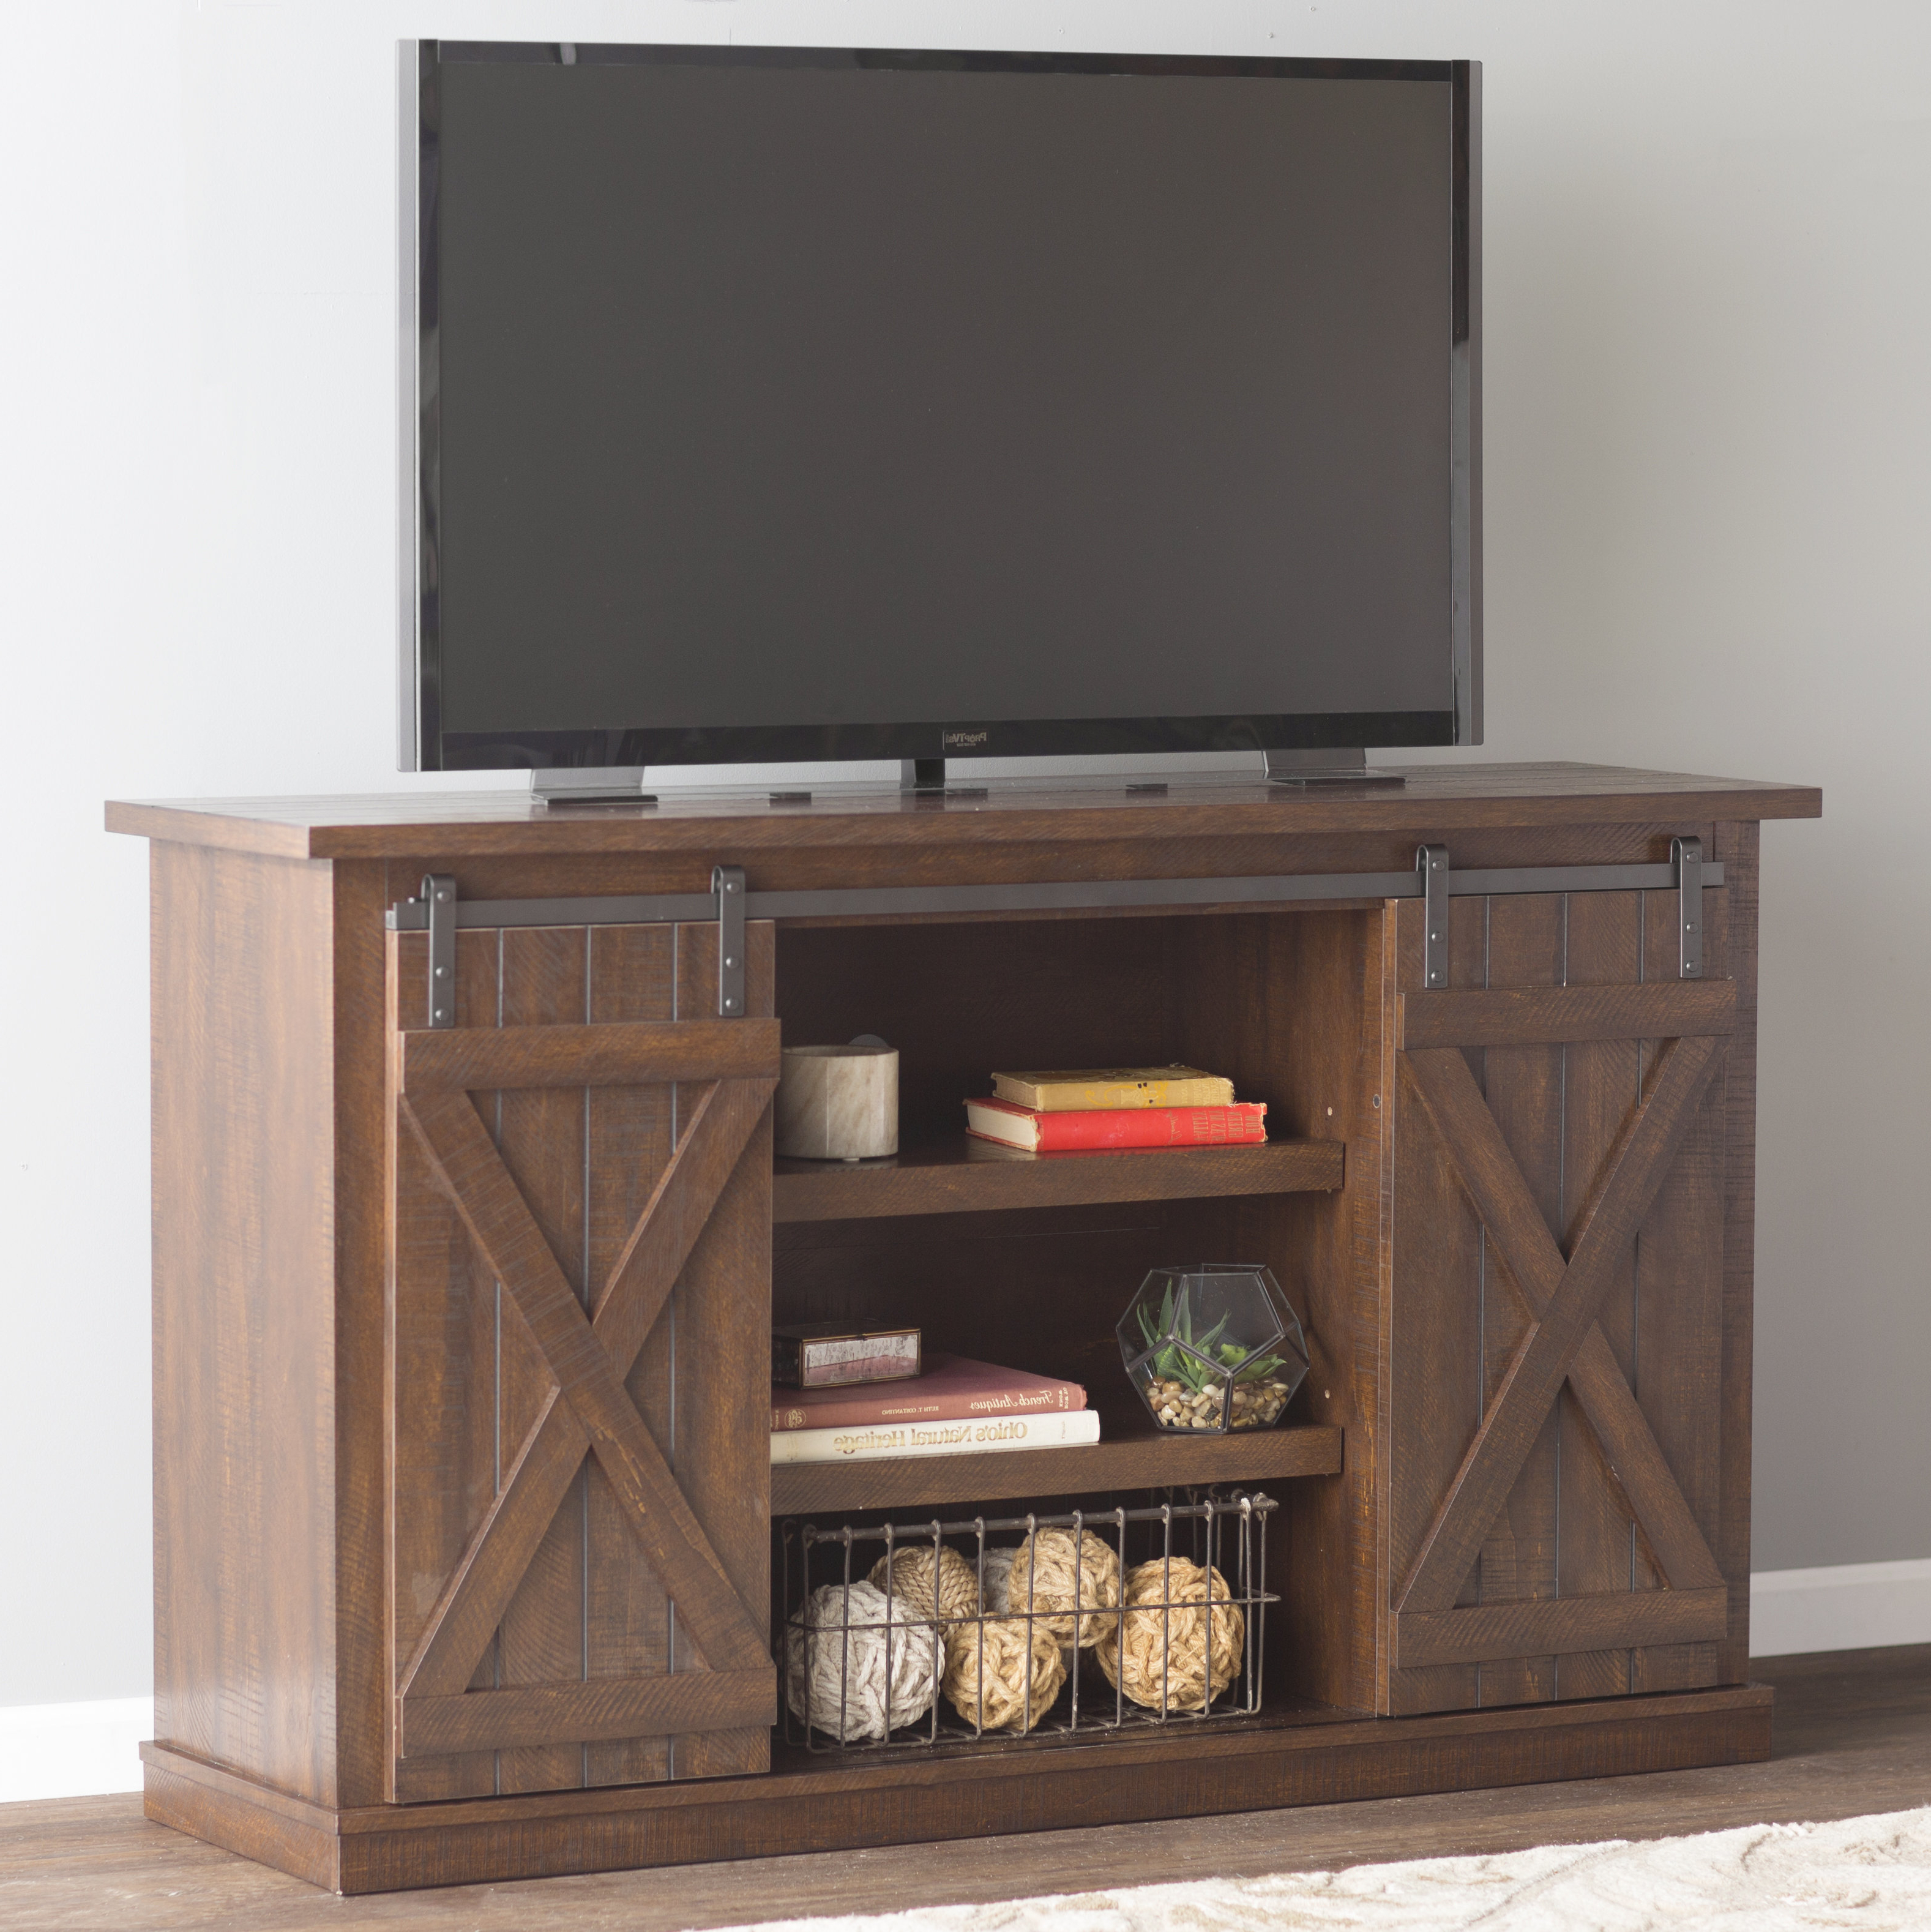 Preferred Wood Tv Entertainment Stands In Tv Stands & Entertainment Centers You'll Love (Gallery 12 of 20)